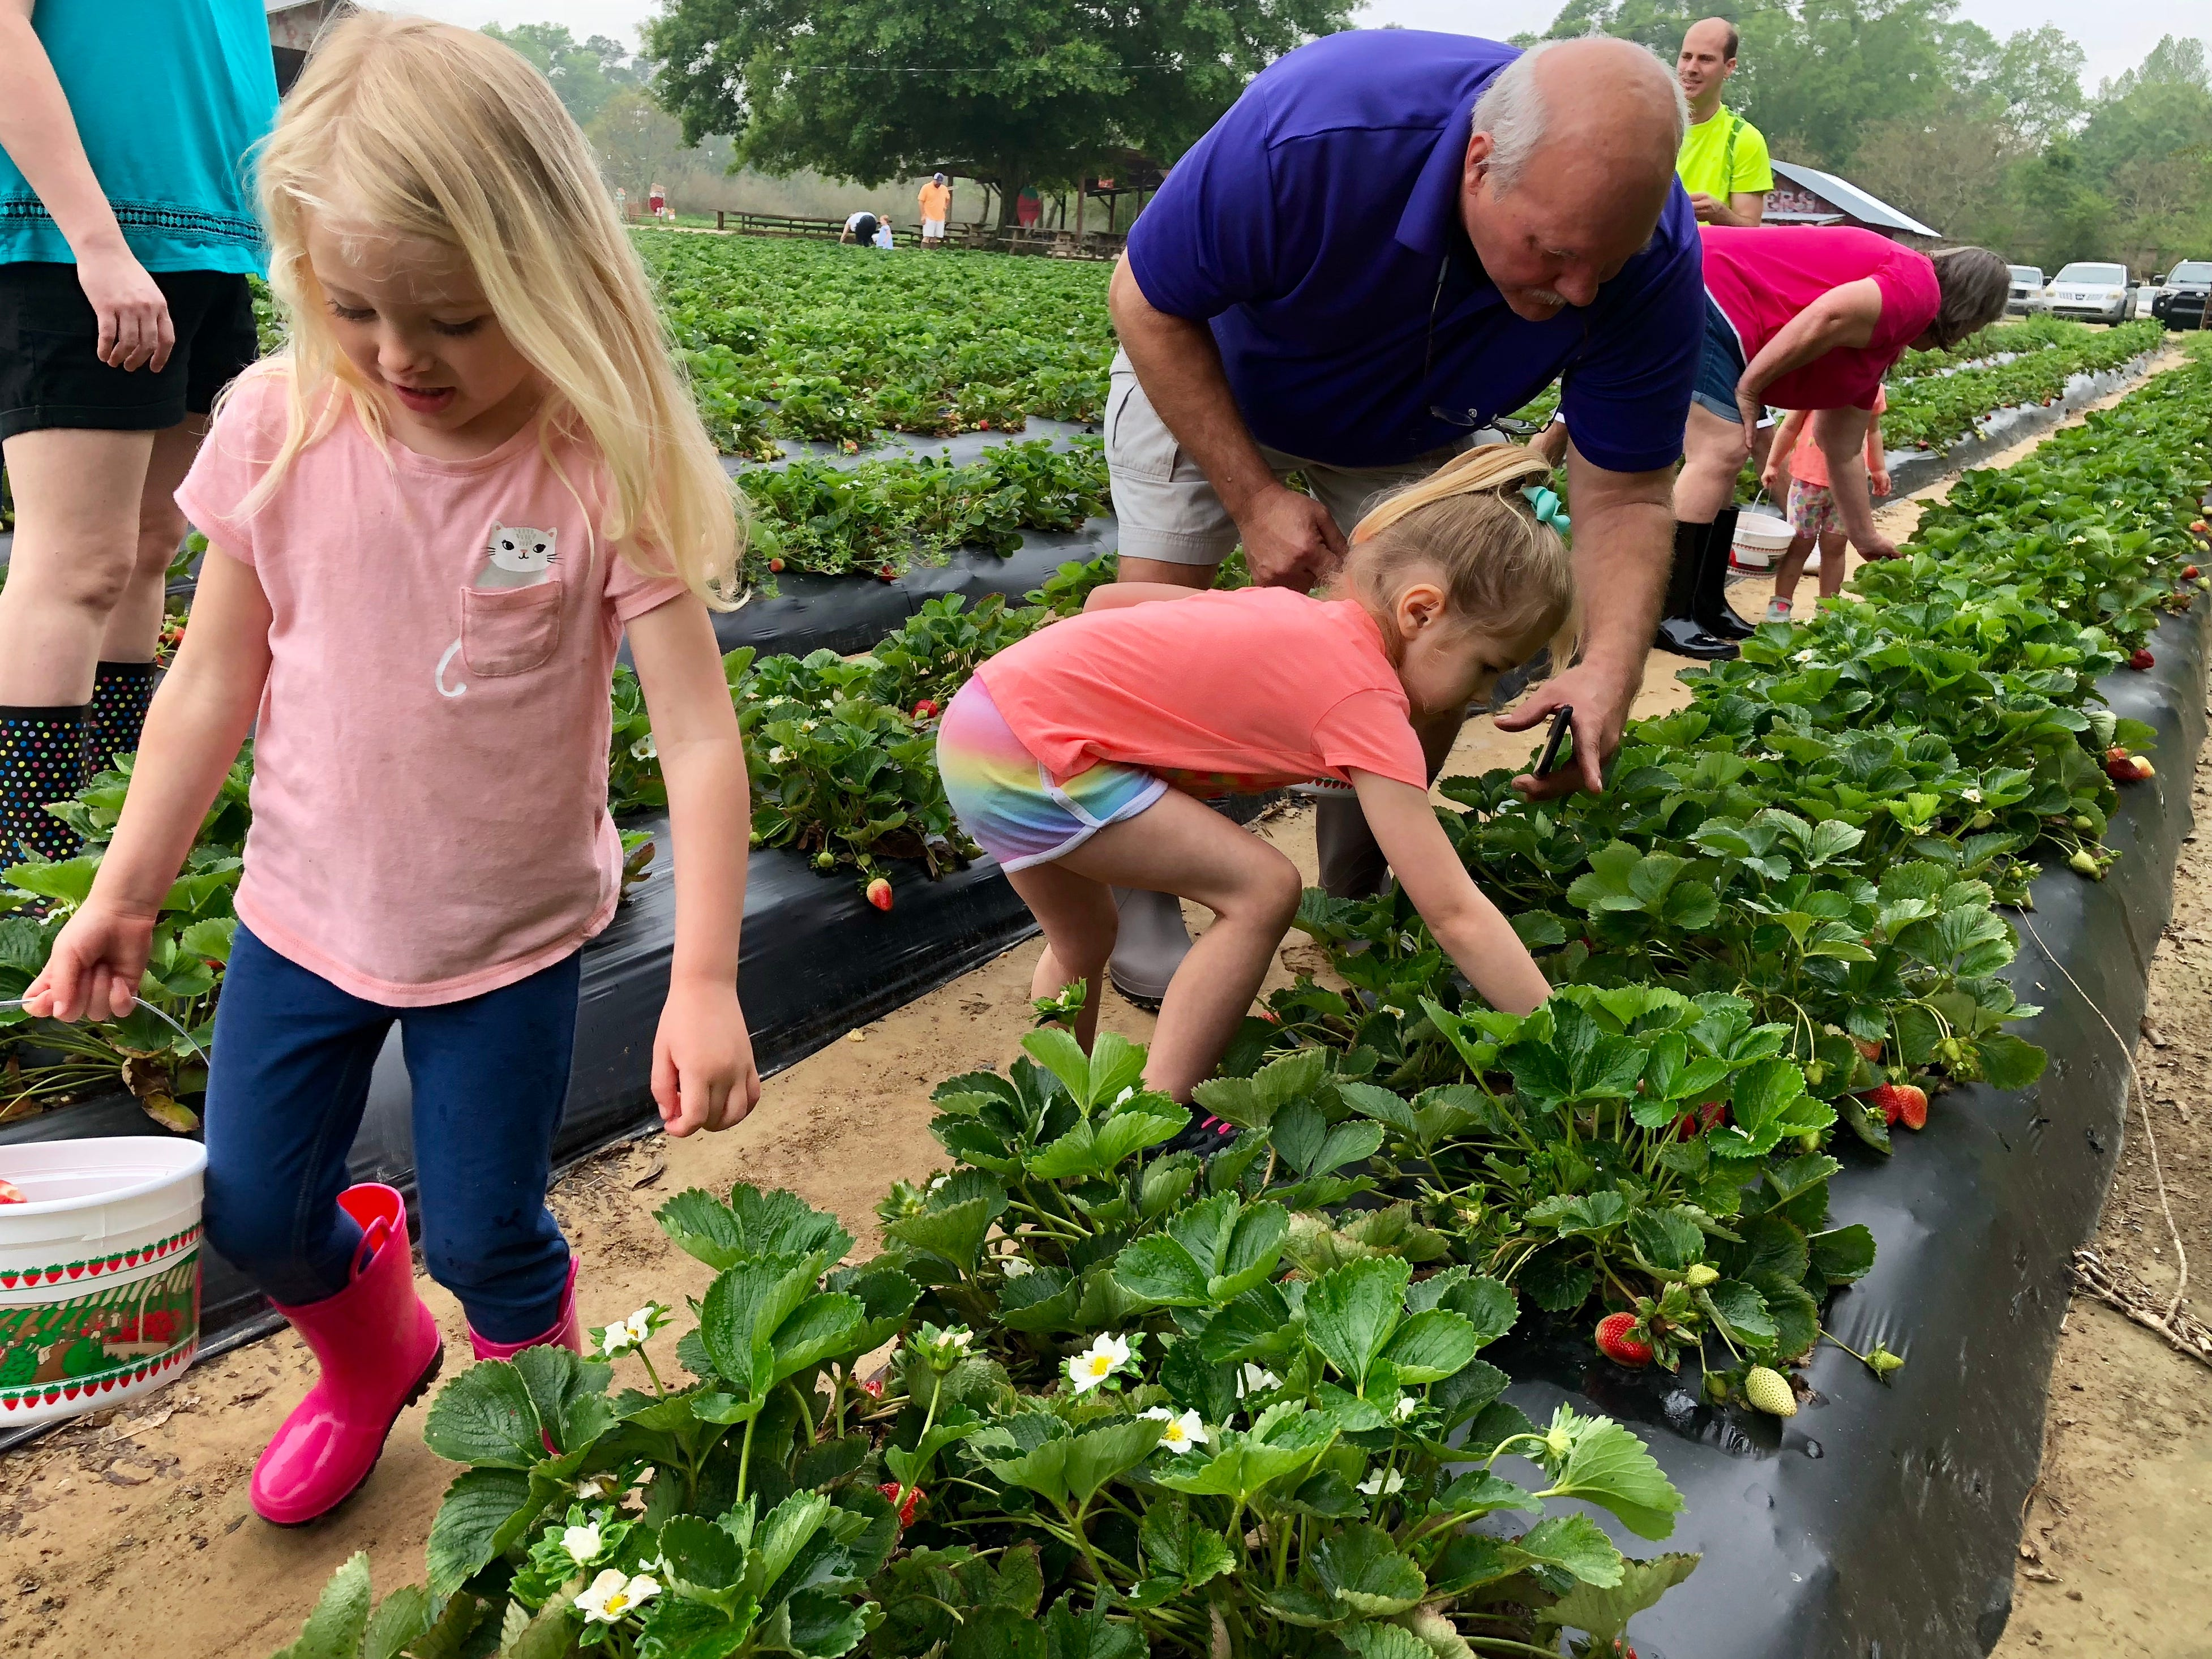 Families pick strawberries April 6 at Mrs. Heather's Strawberry Farm in Albany, Louisiana.